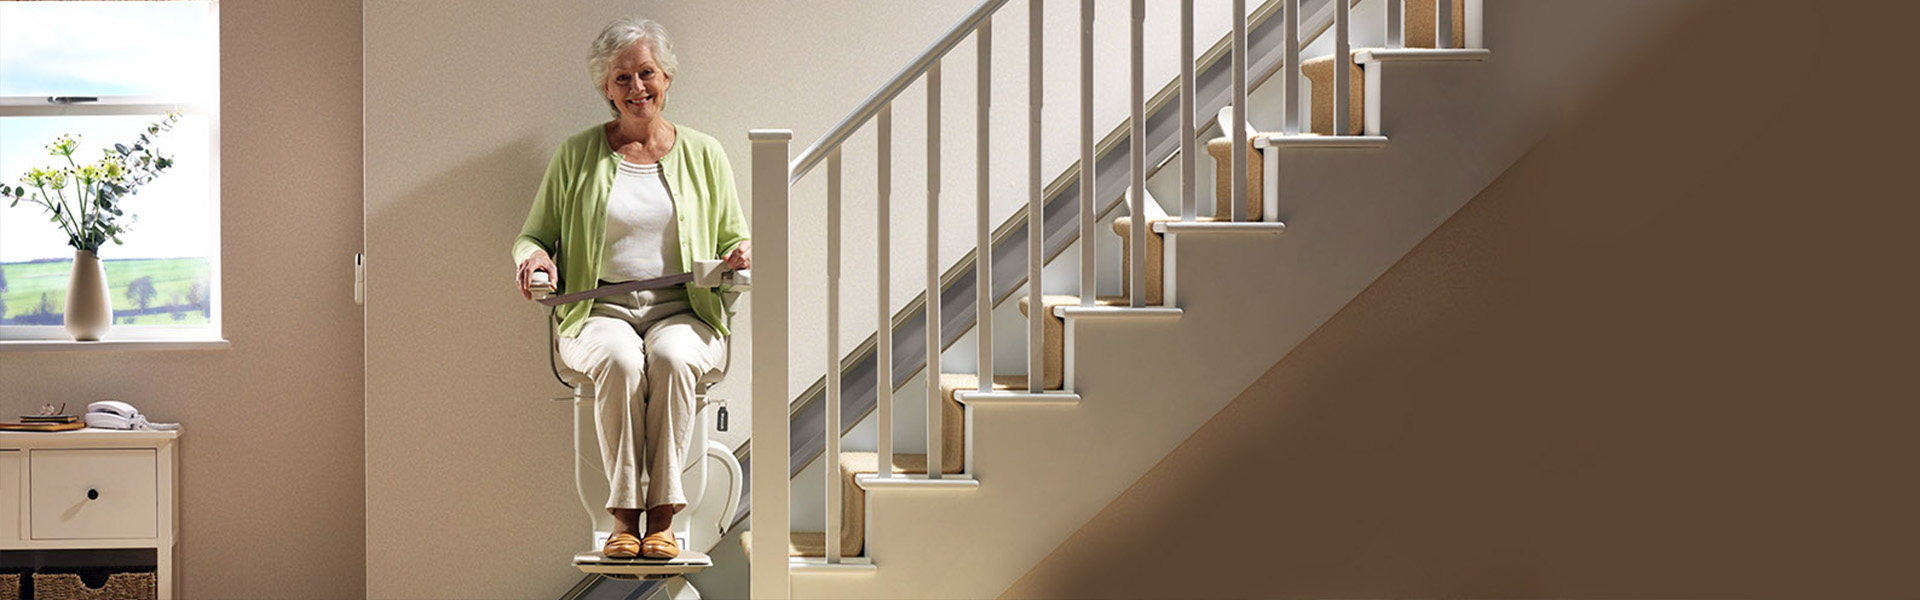 & Stannah Stair Lifts Stair Chairs Stair Lift: IN IL WI |